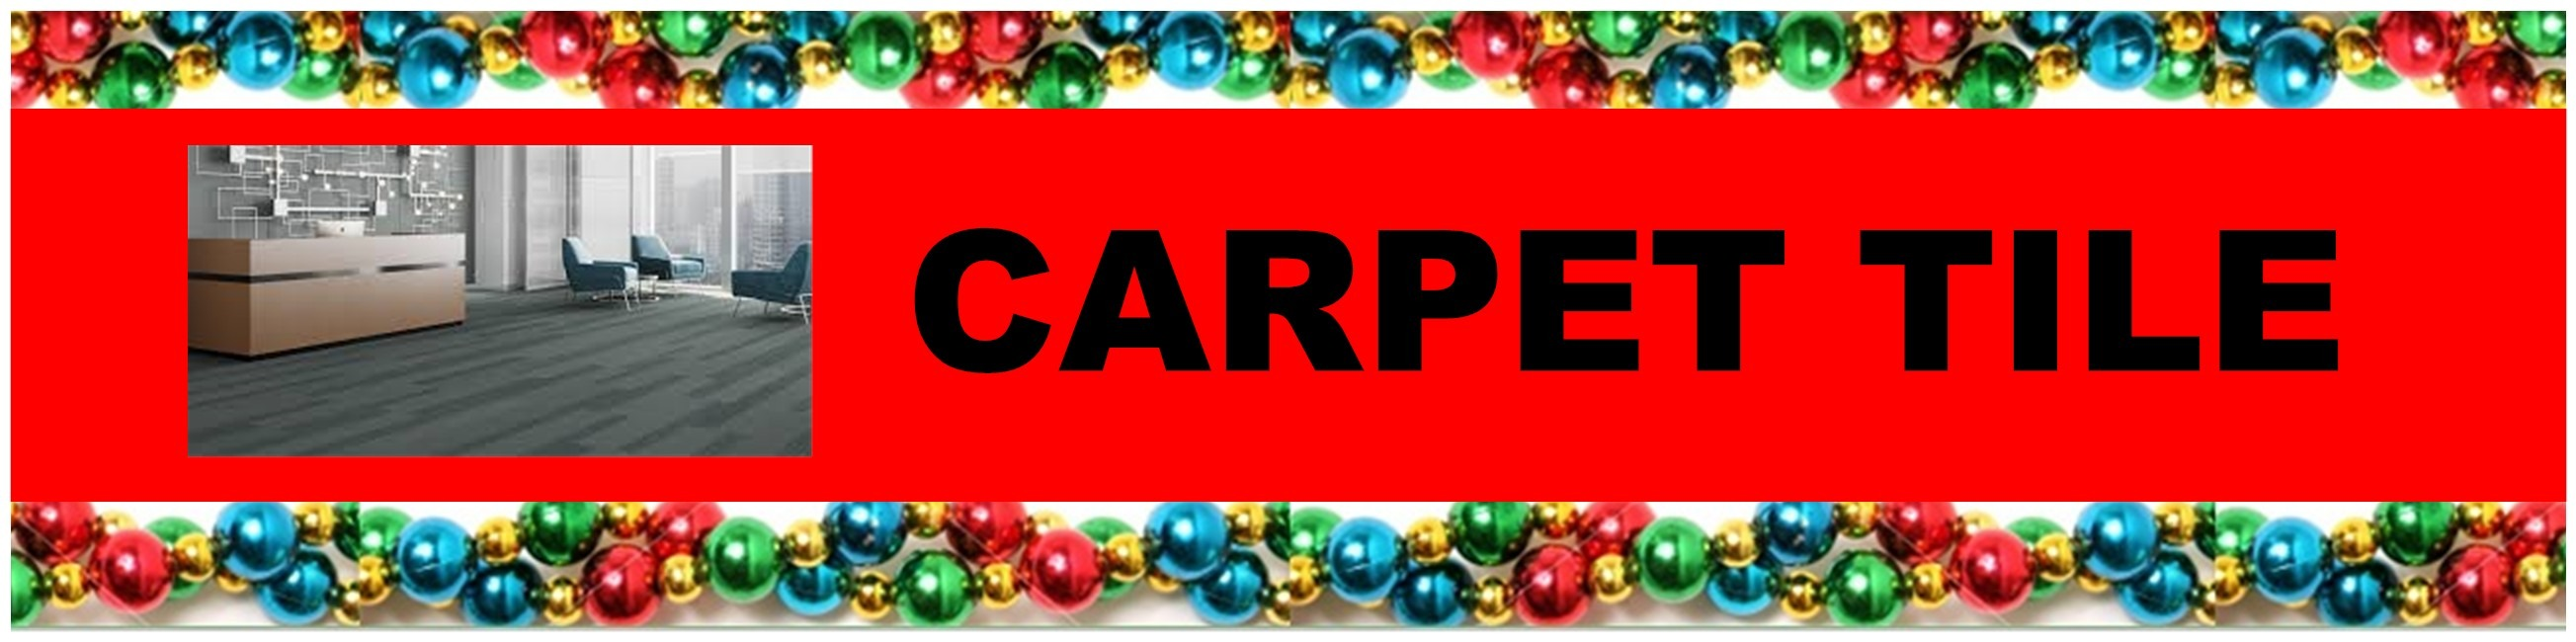 CHRISTMAS CARPET TILE HEADER